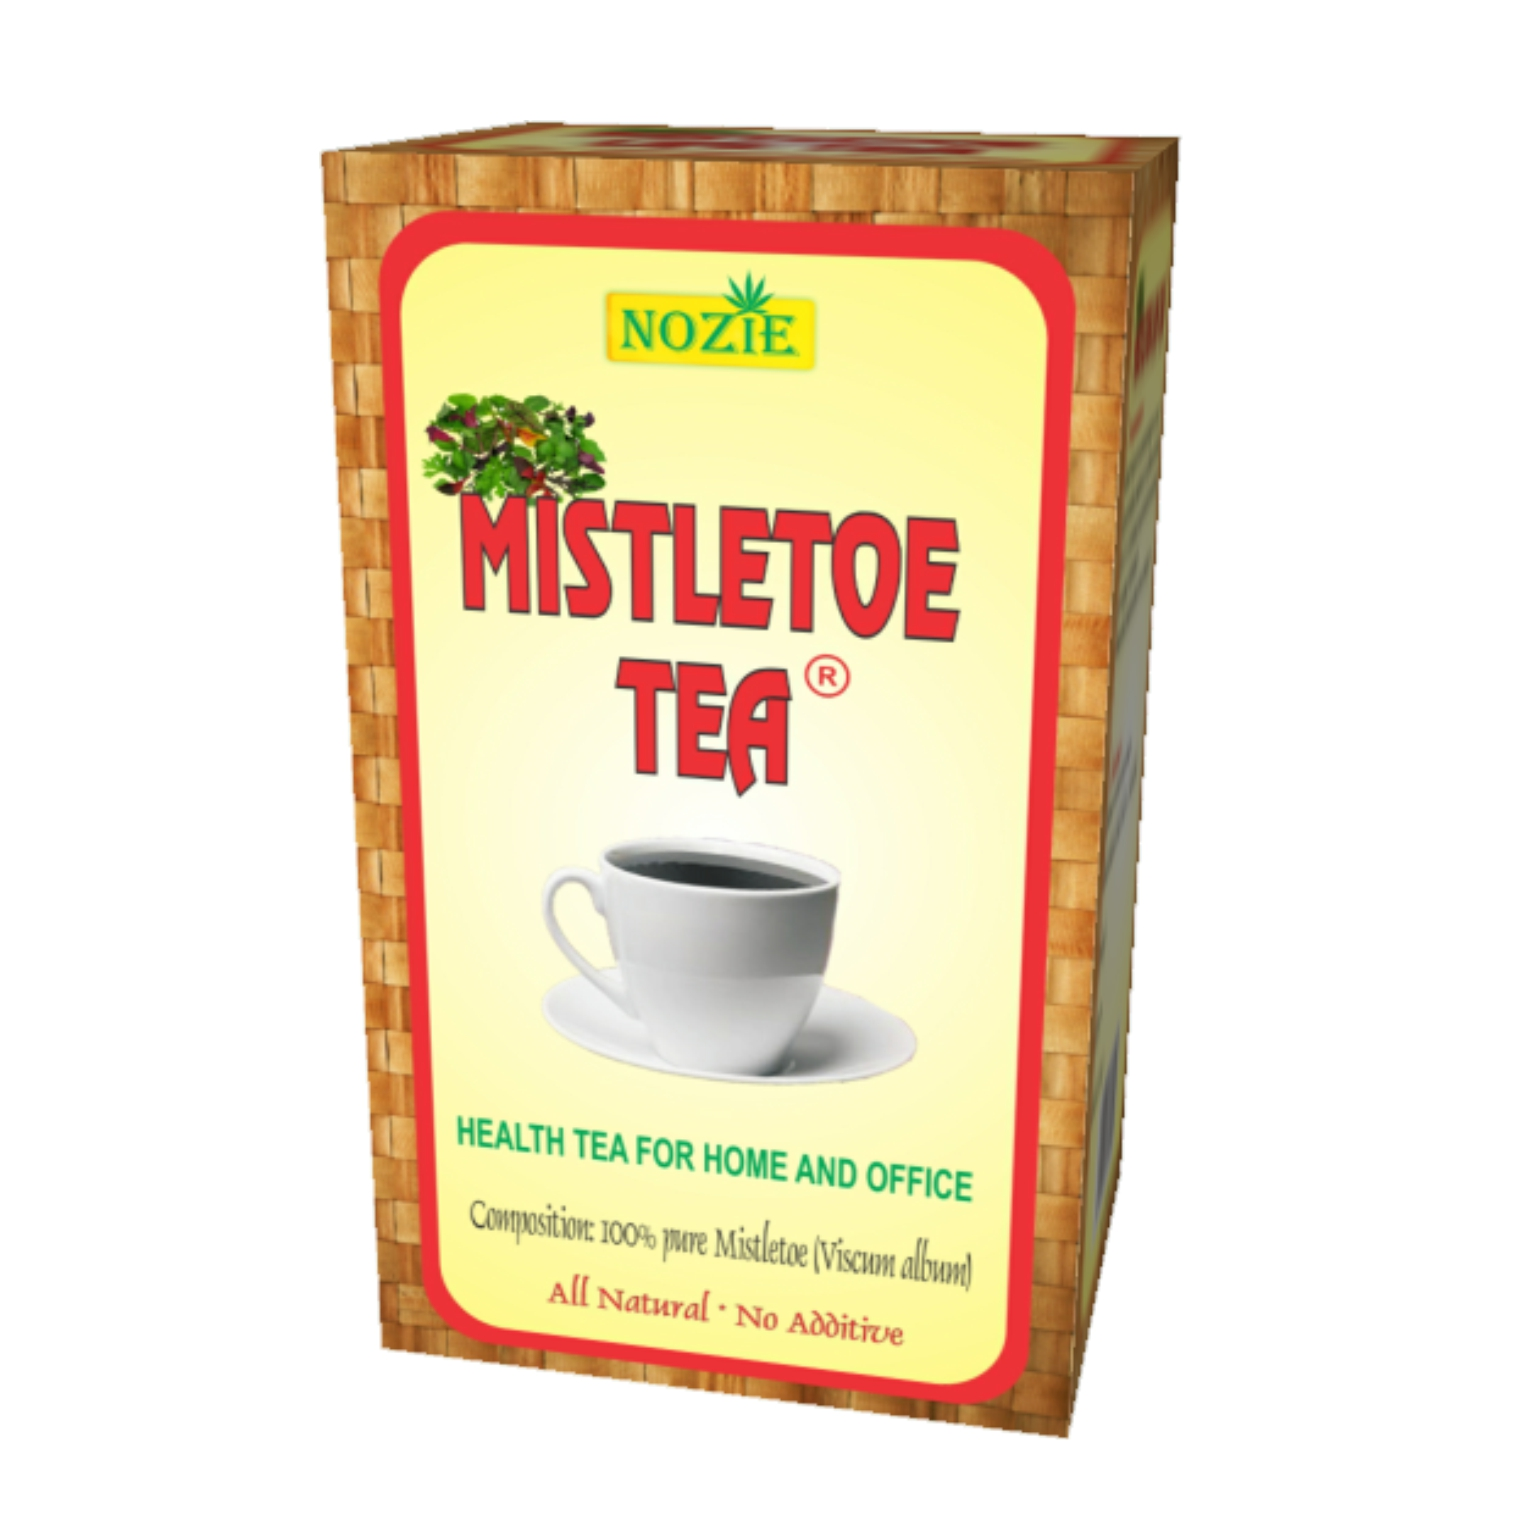 Mistletoe tea benefits